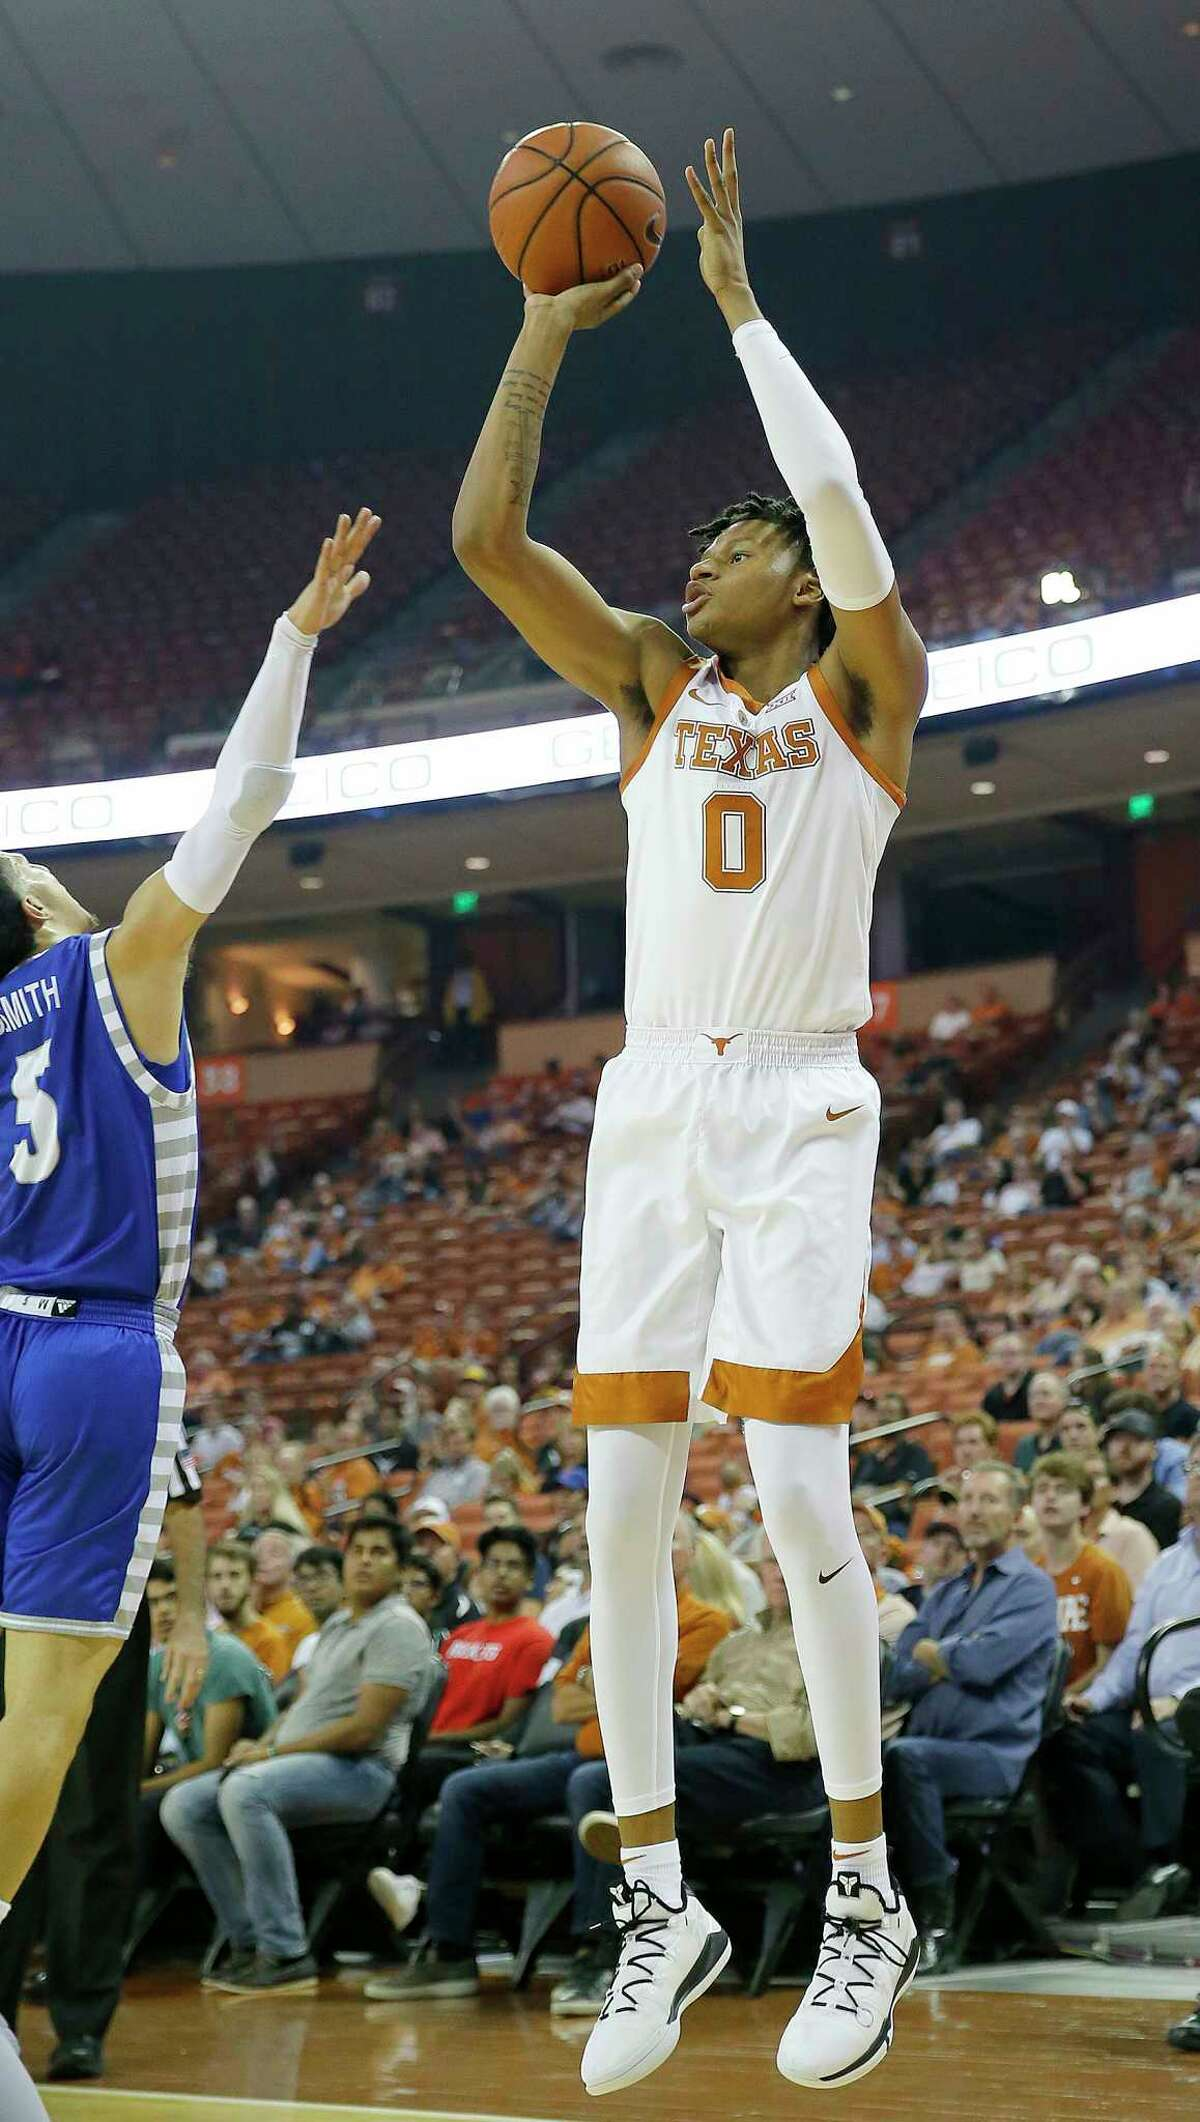 AUSTIN, TX - NOVEMBER 6: Gerald Liddell #0 of the Texas Longhorns shoots over Sharif Smith #5 of the Eastern Illinois Panthers at the Frank Erwin Center on November 6, 2018 in Austin, Texas.